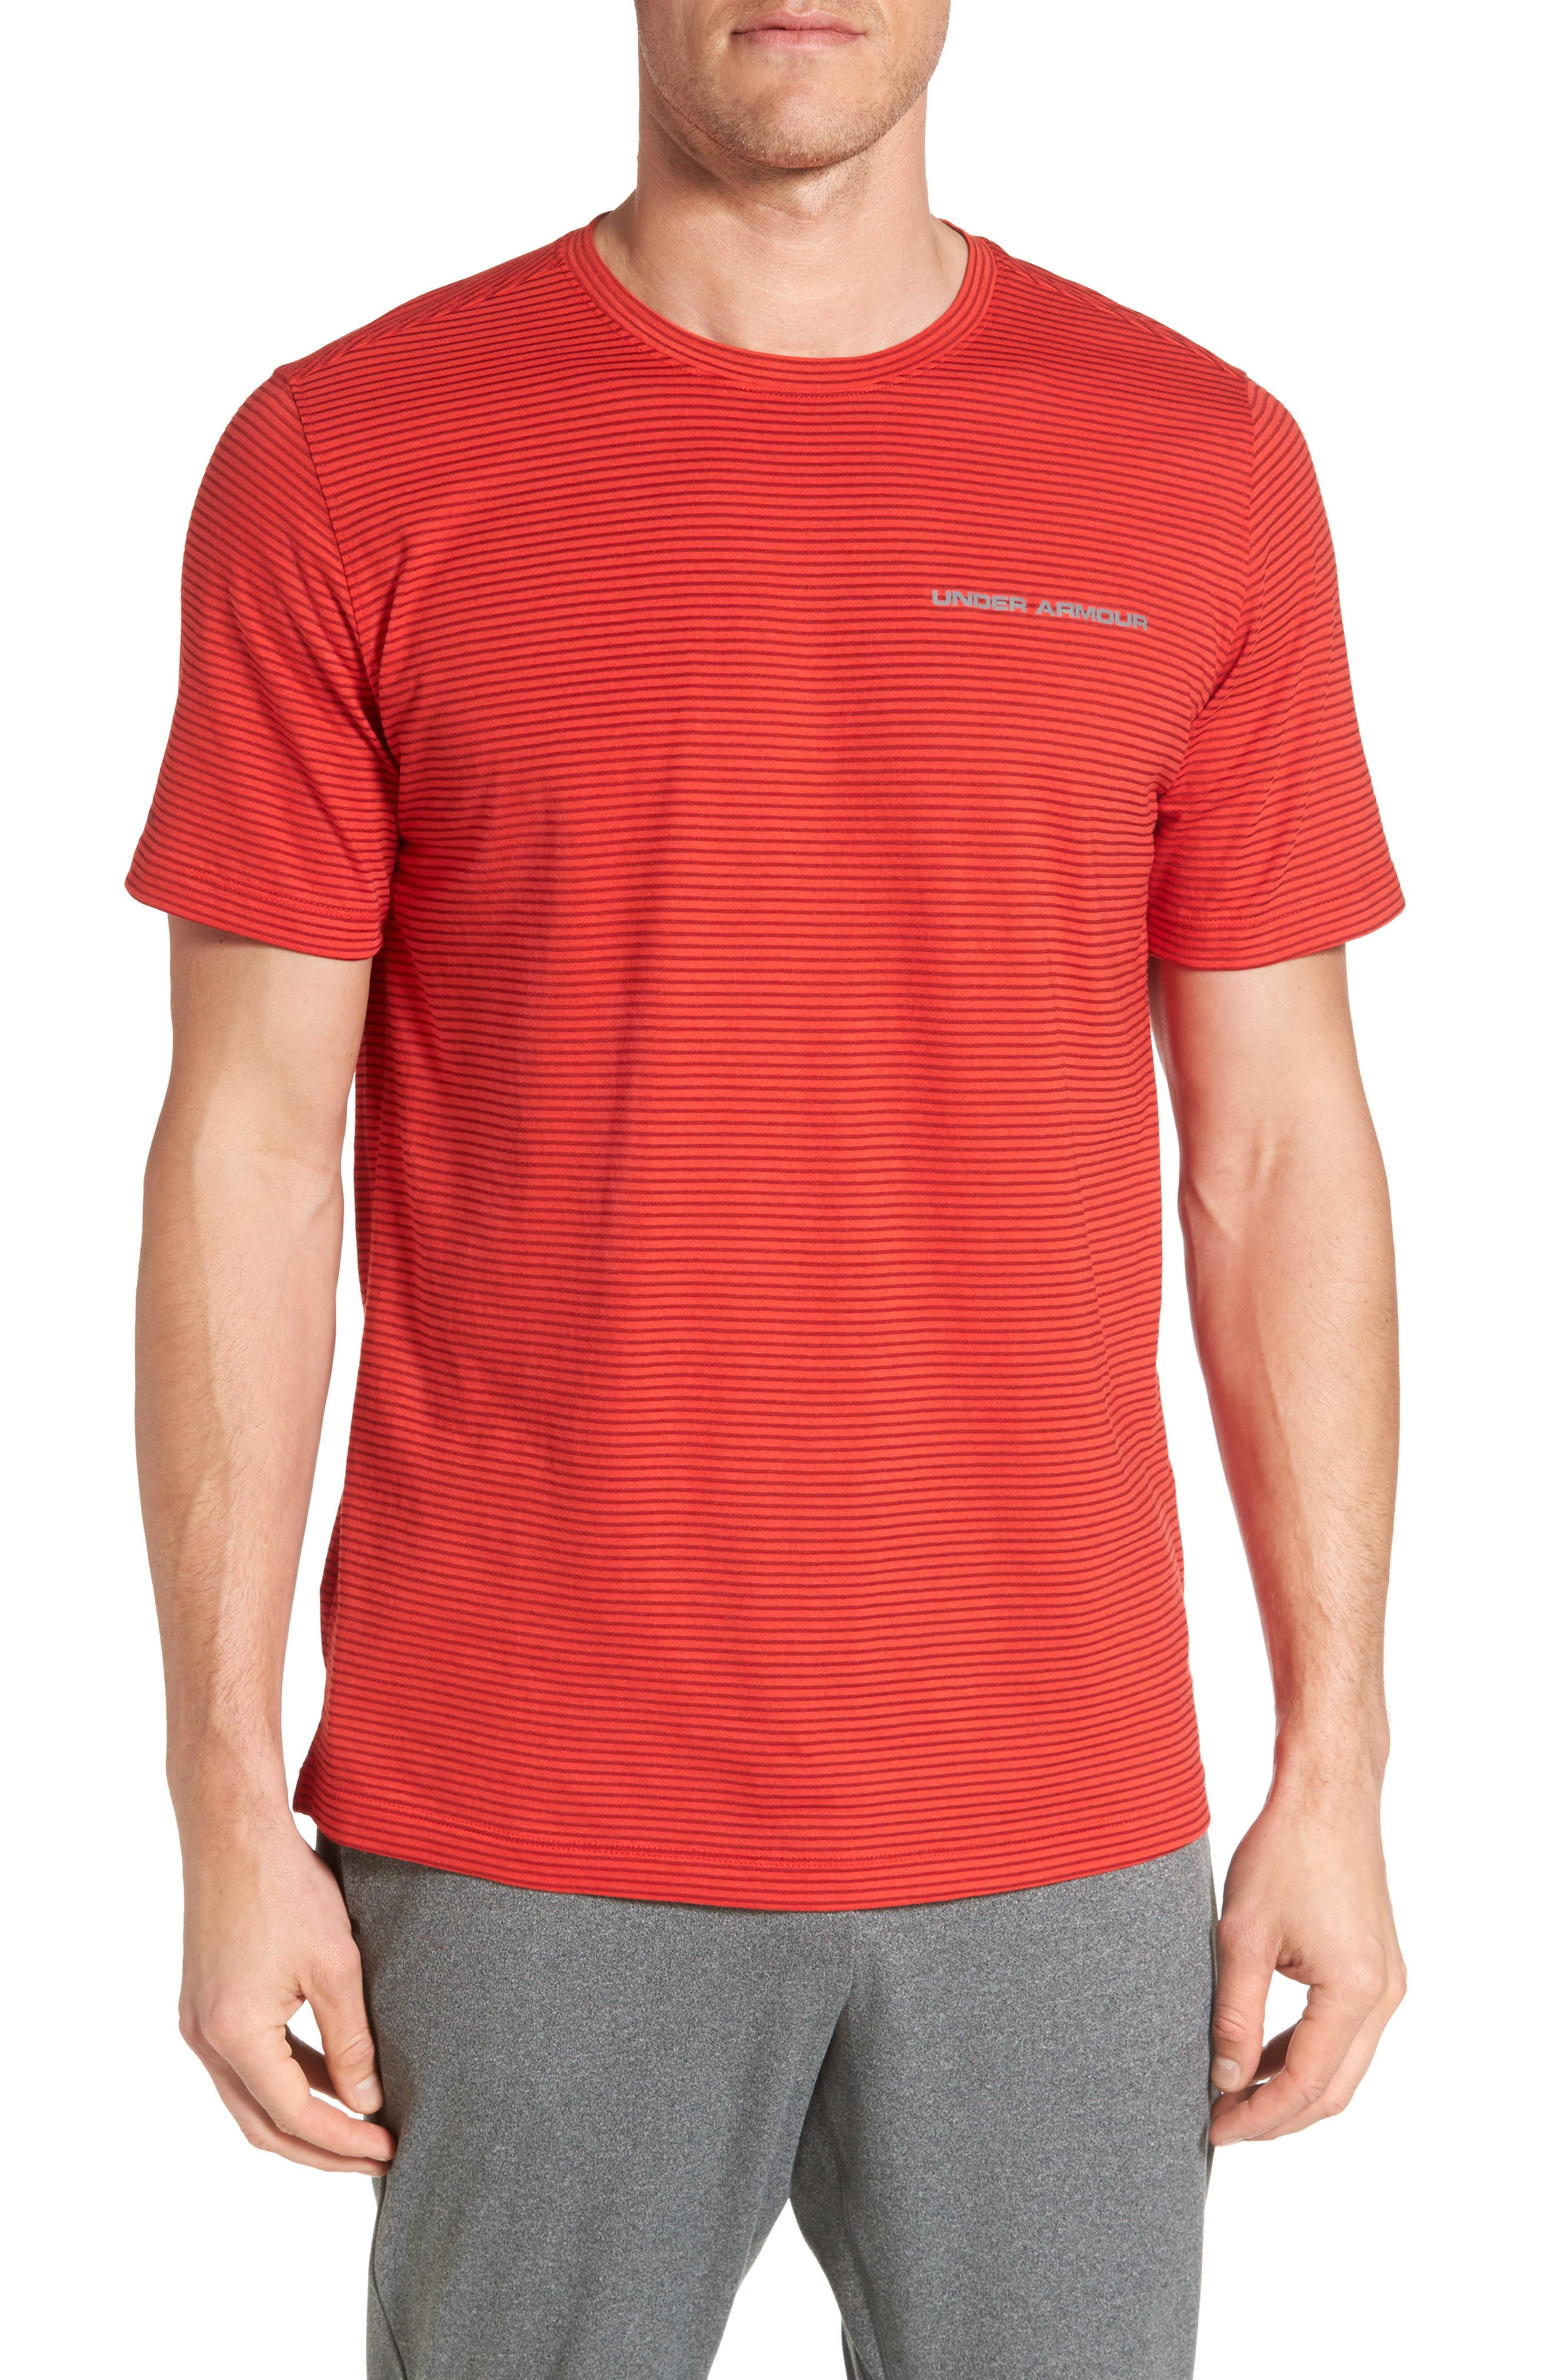 Under Armour Charged Cotton® T-Shirt